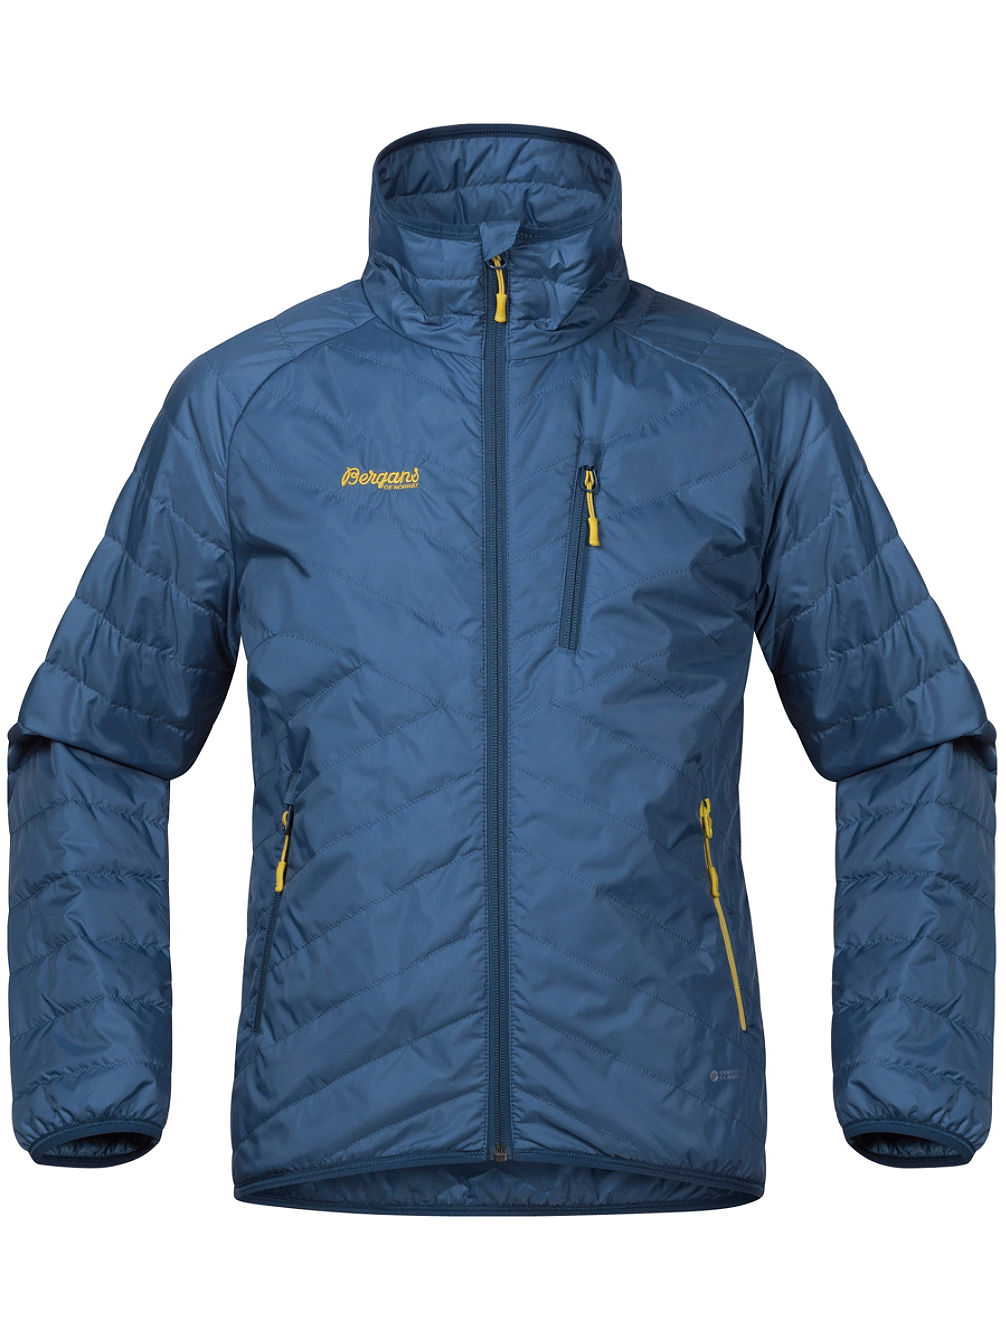 Josten Light Insulated Jacket Boys